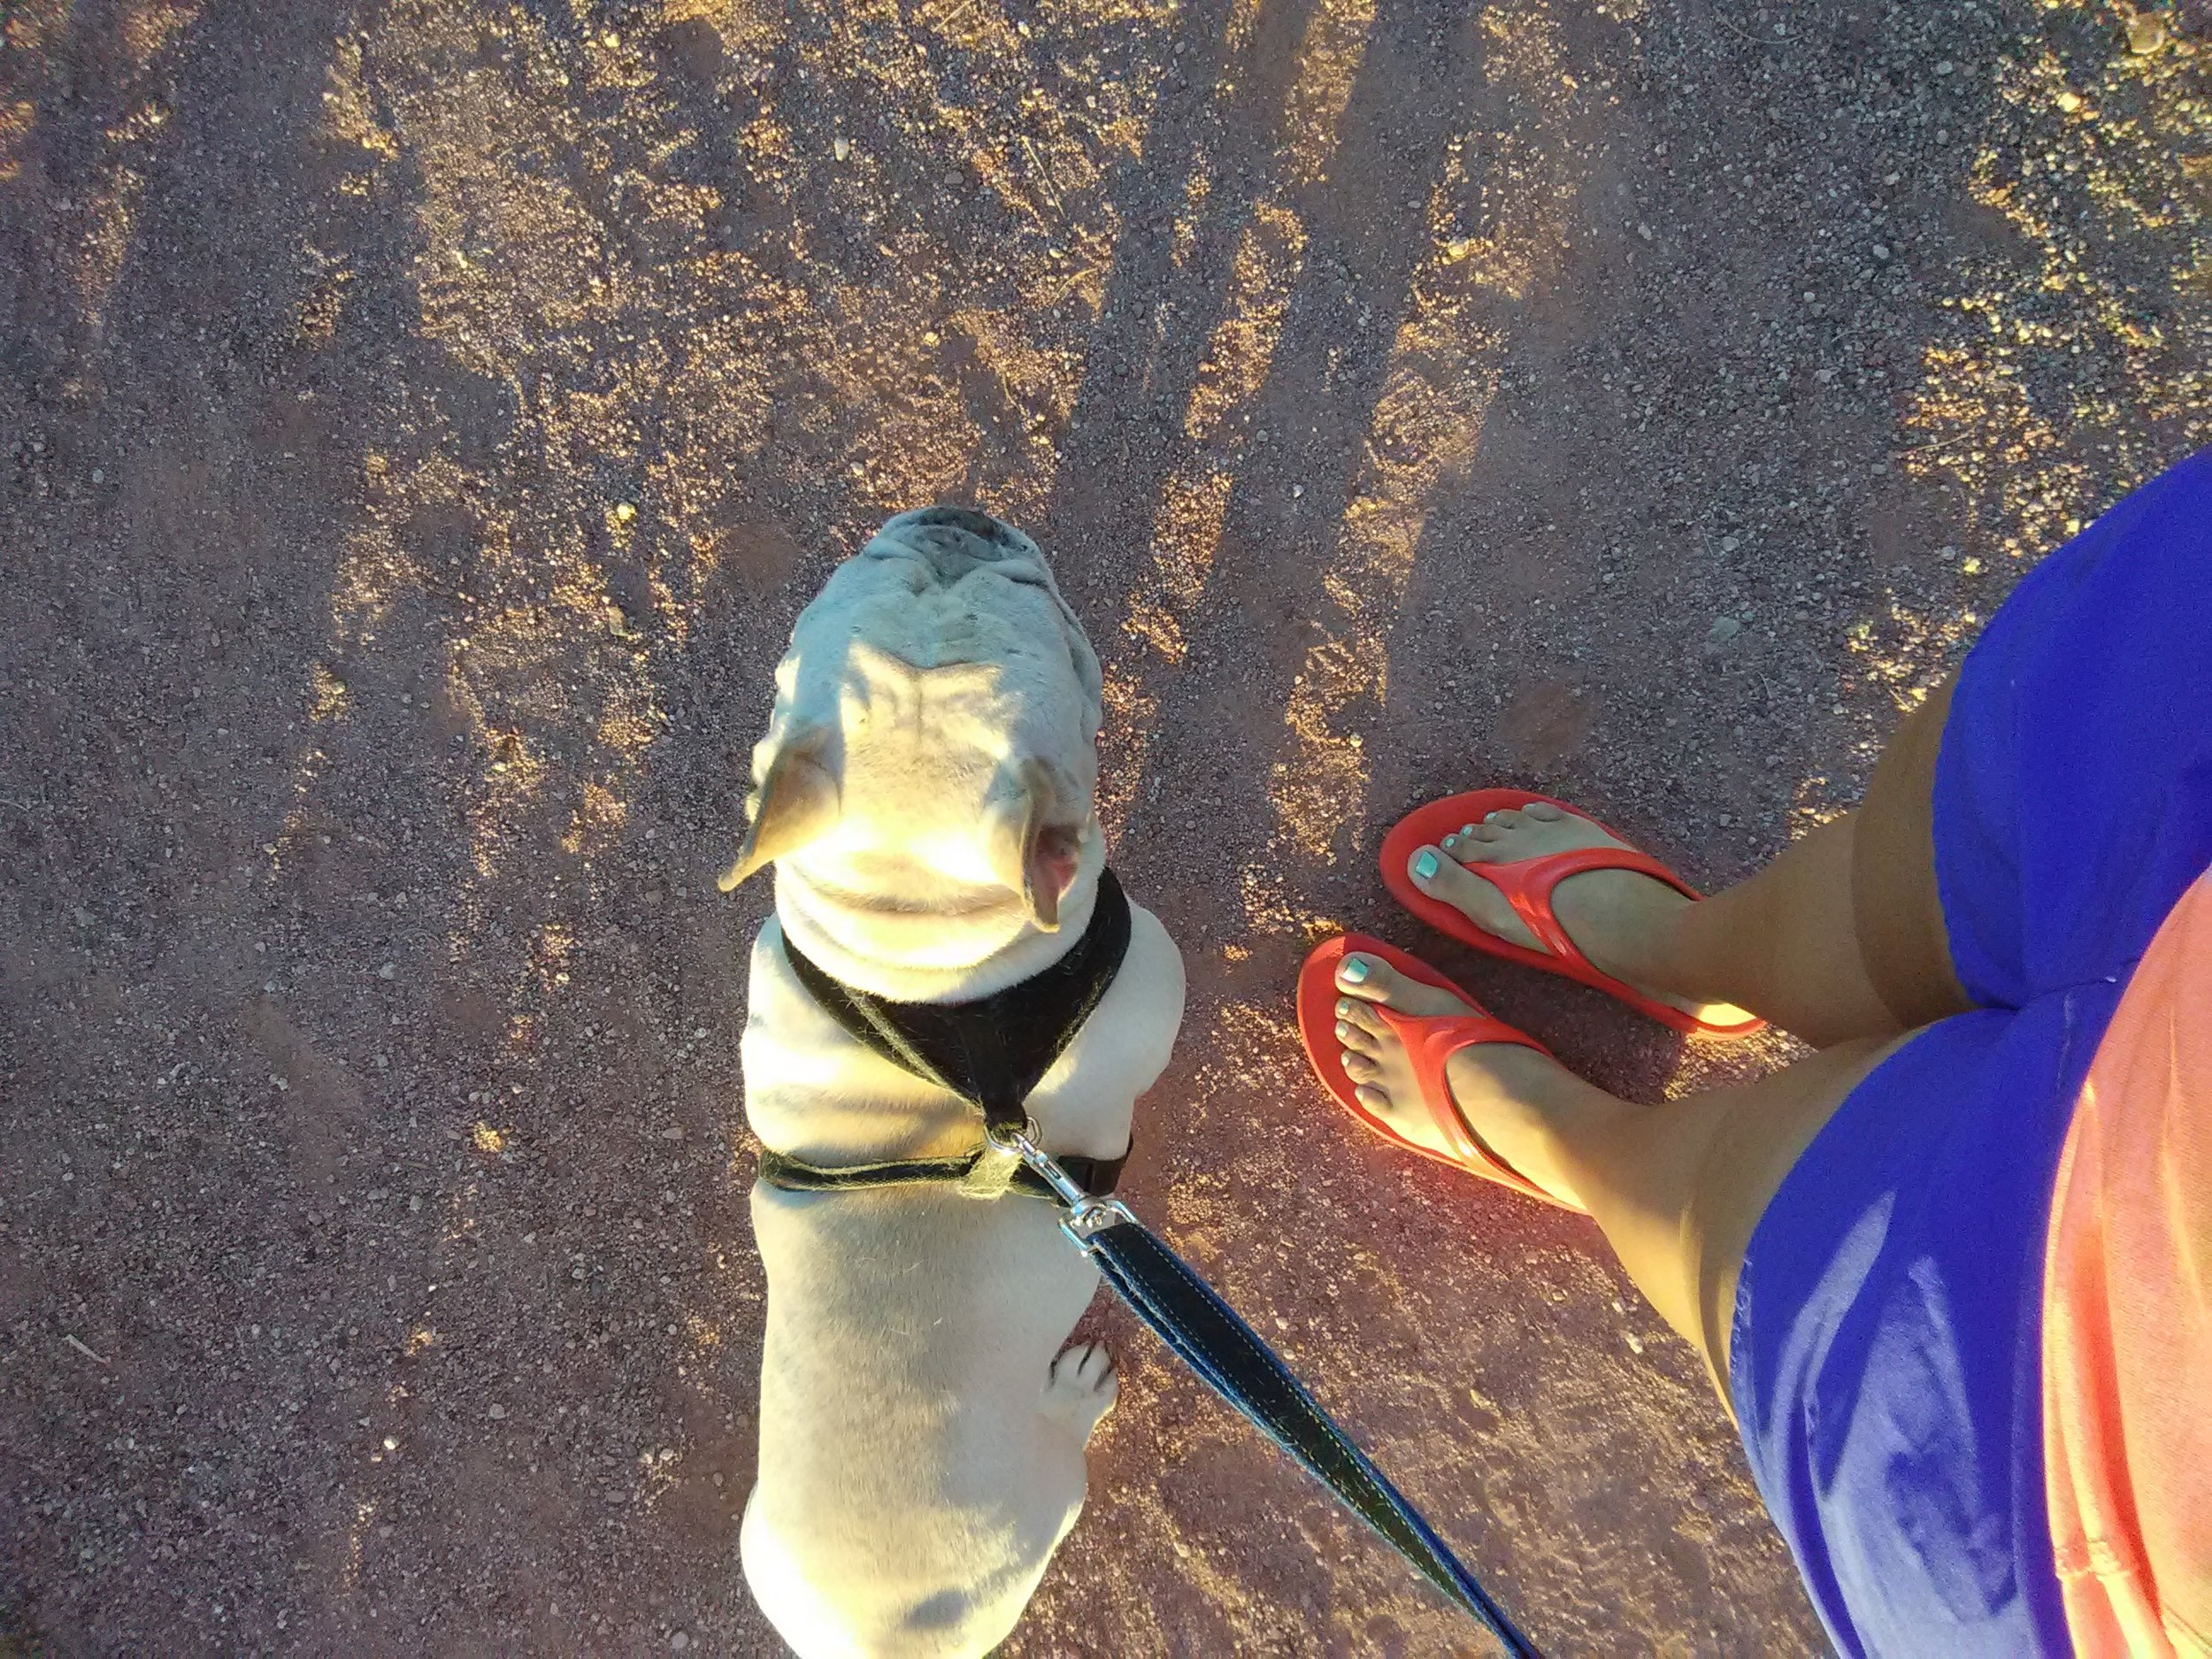 I quickly slide on my OOfos OOlala's then take my doggie out for morning walks. Photo by Andrea Heser